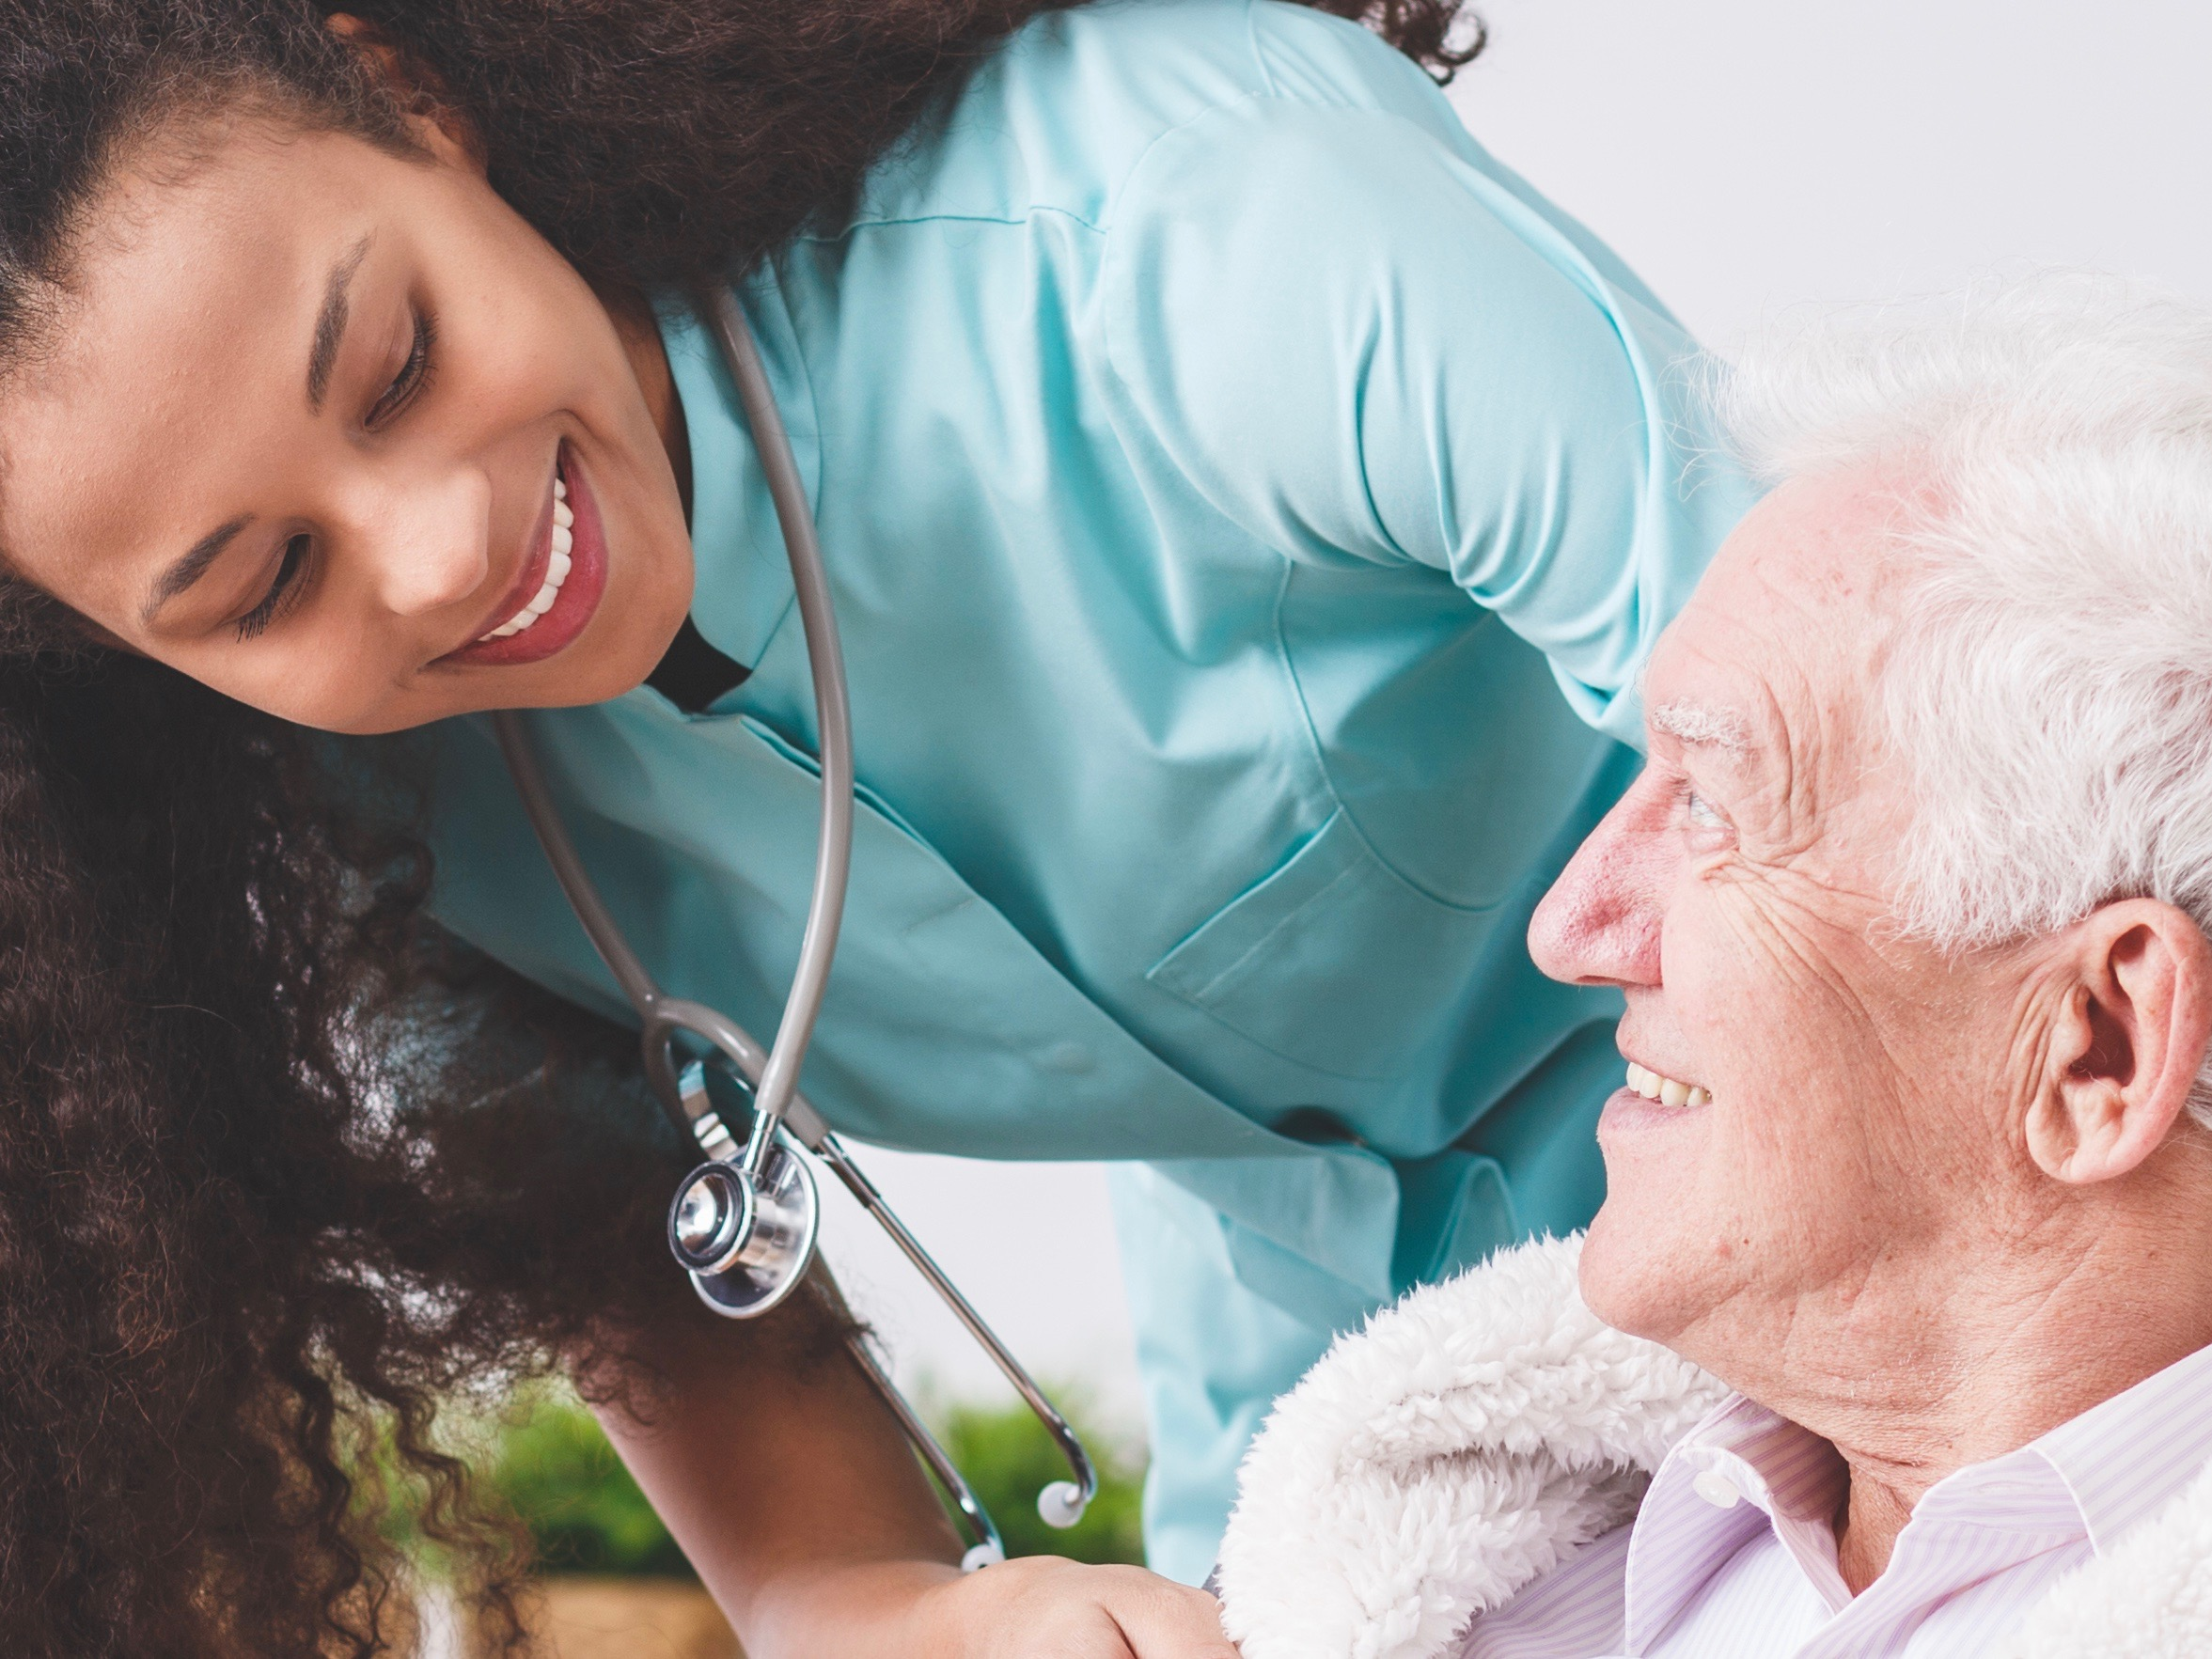 Limiting the number of patients nurses have to care for improves hospital conditions and would help address a nurse shortage, according to a new study. (Shutterstock)